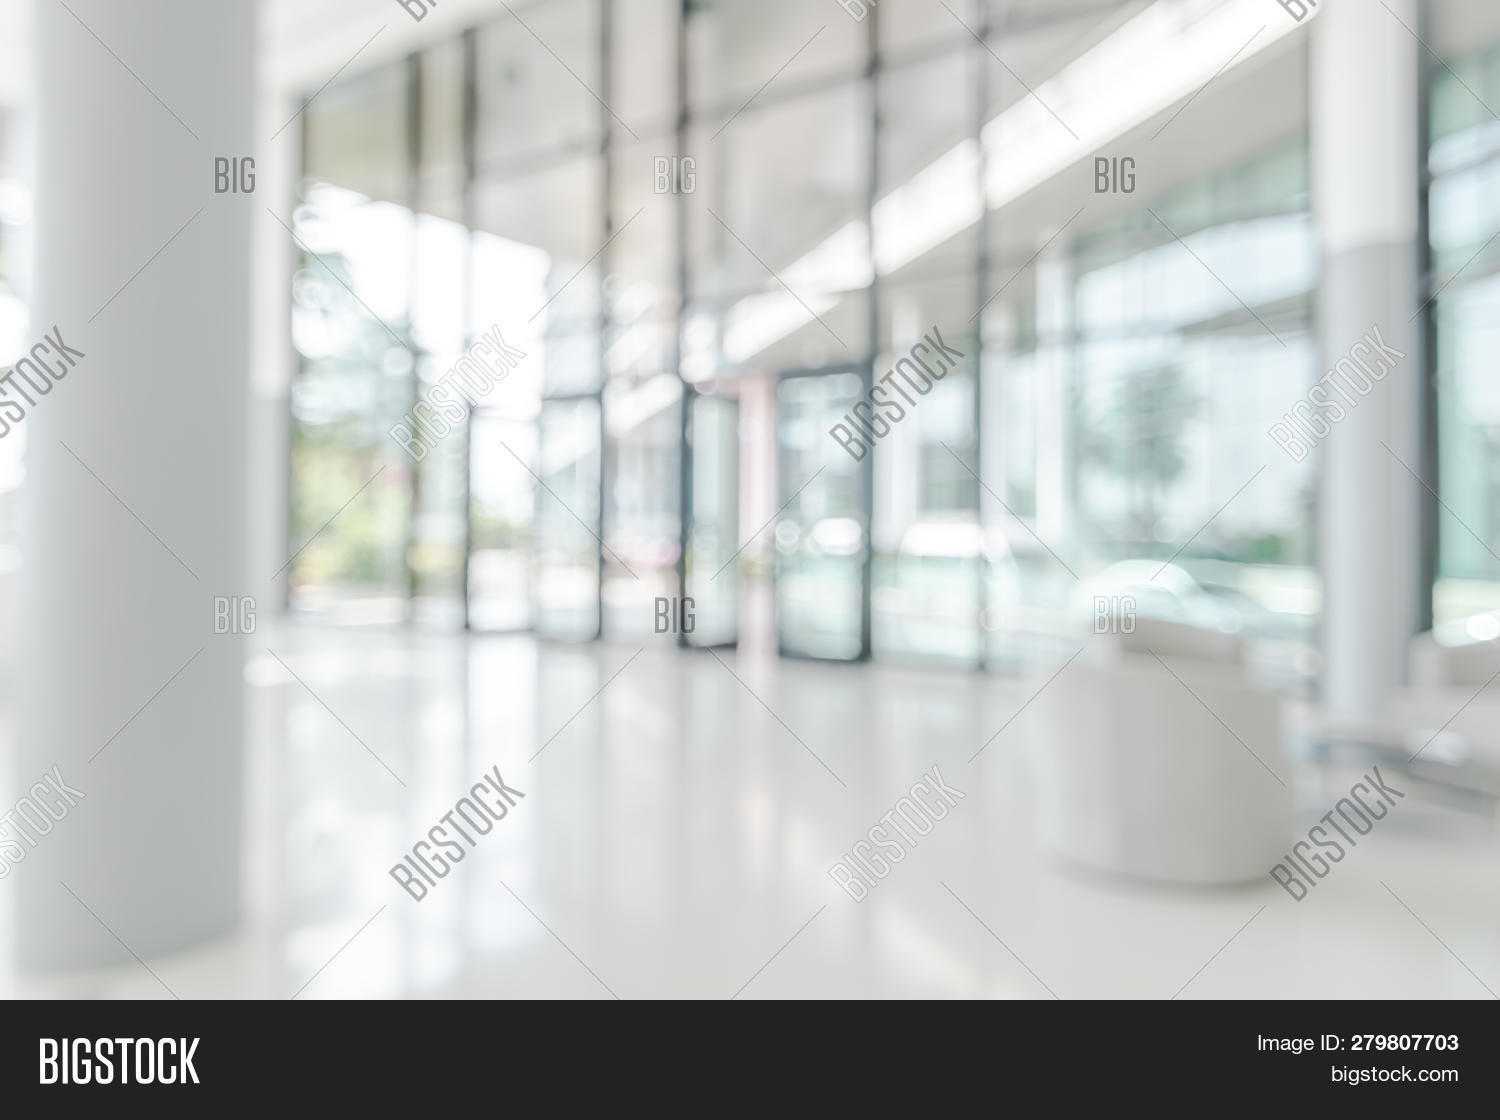 Blur Office Background Image Photo Free Trial Bigstock